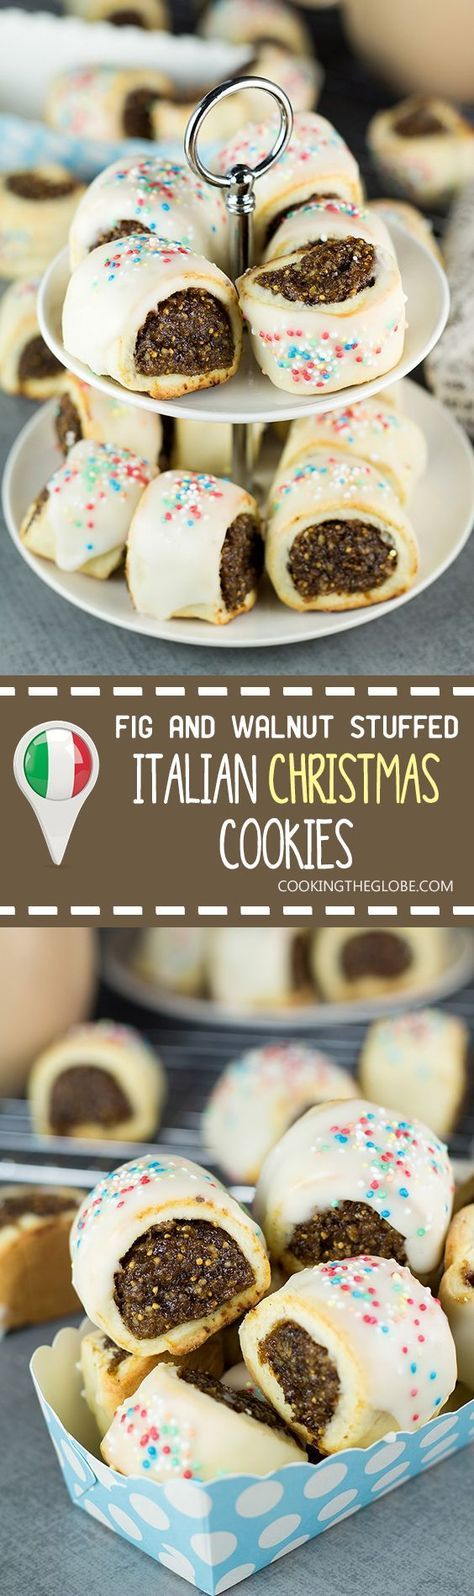 These Italian Christmas Cookies, also called Cuccidati, are filled with a mouth-watering fig and walnut mixture and topped with a sweet white icing!   http://cookingtheglobe.com